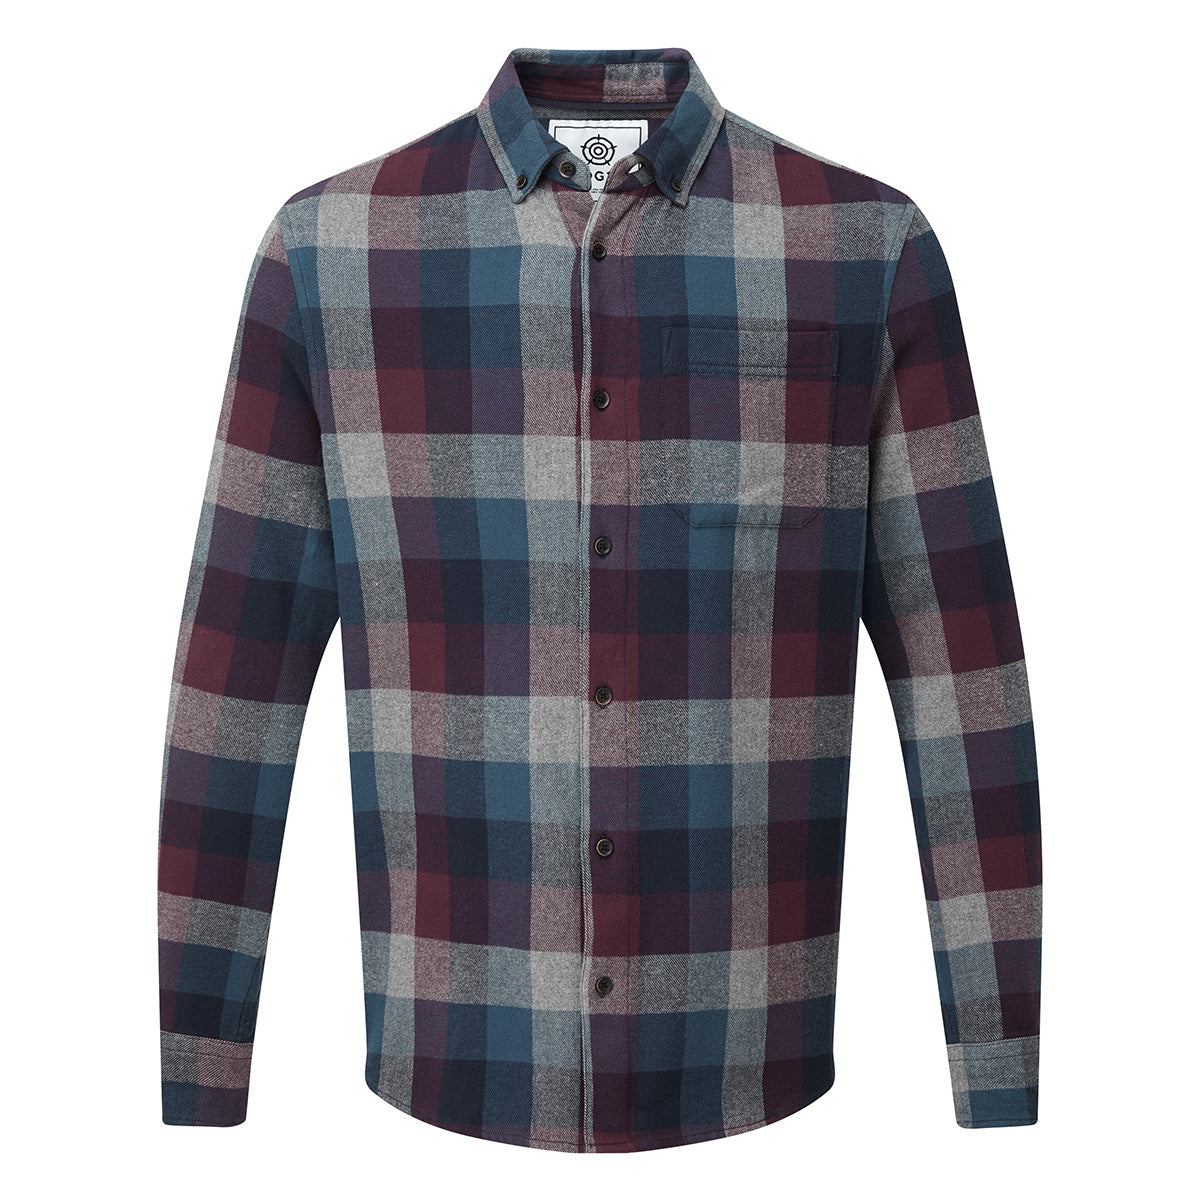 Alfred Mens Long Sleeve Flannel Check Shirt - Deep Port Marl image 4